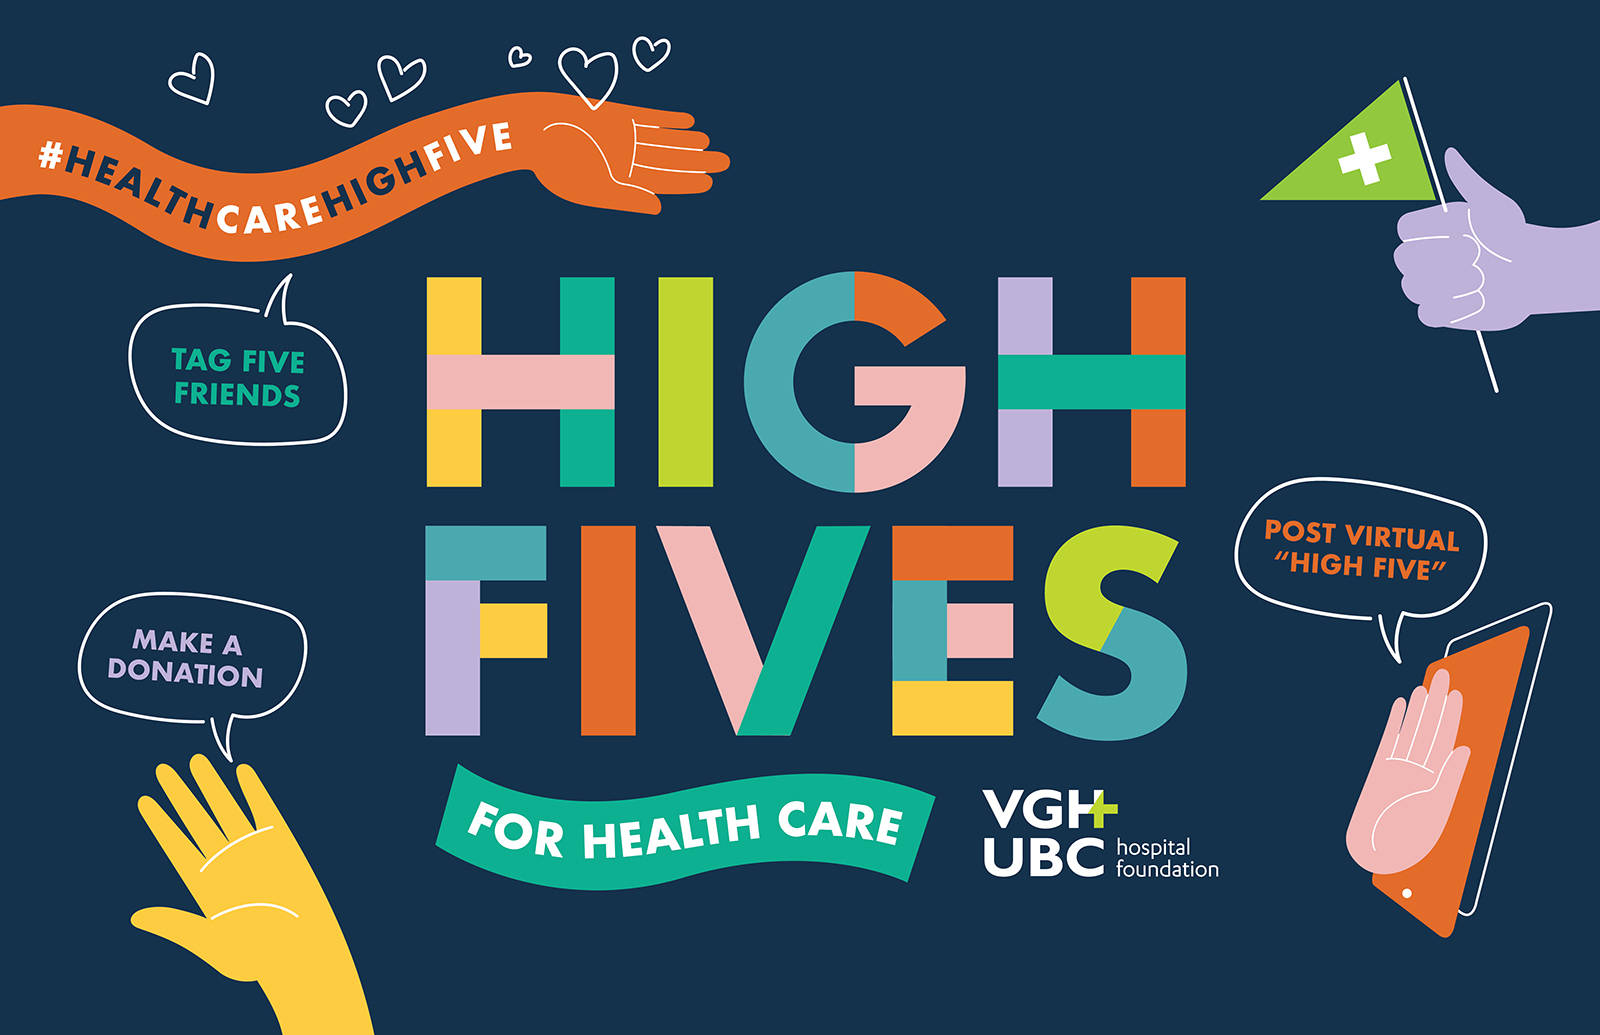 VGH-UBC High Fives for Health Care